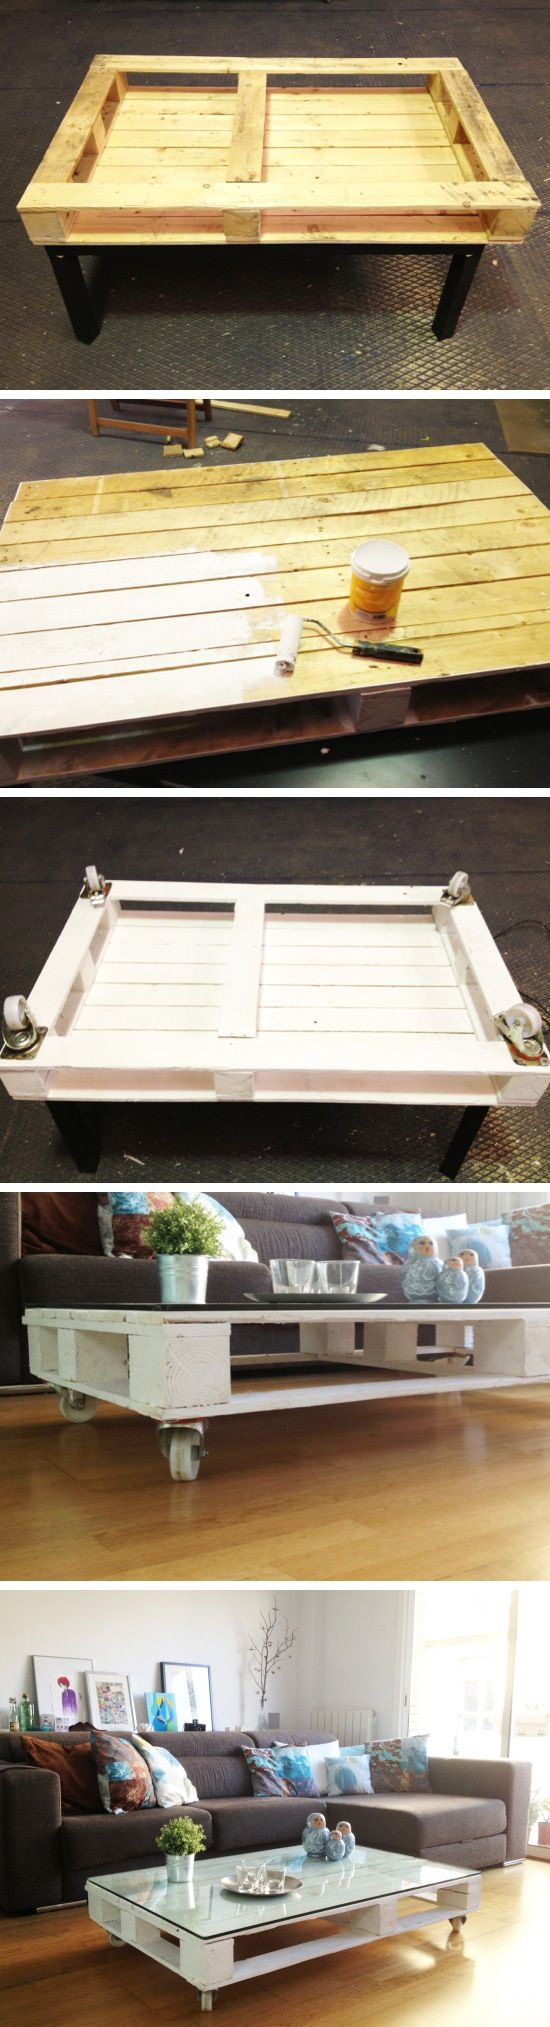 DIY Rolling Pallet Table | Easy & inexpensive!  Instead of glass for the top I would rather mod podge a design =)